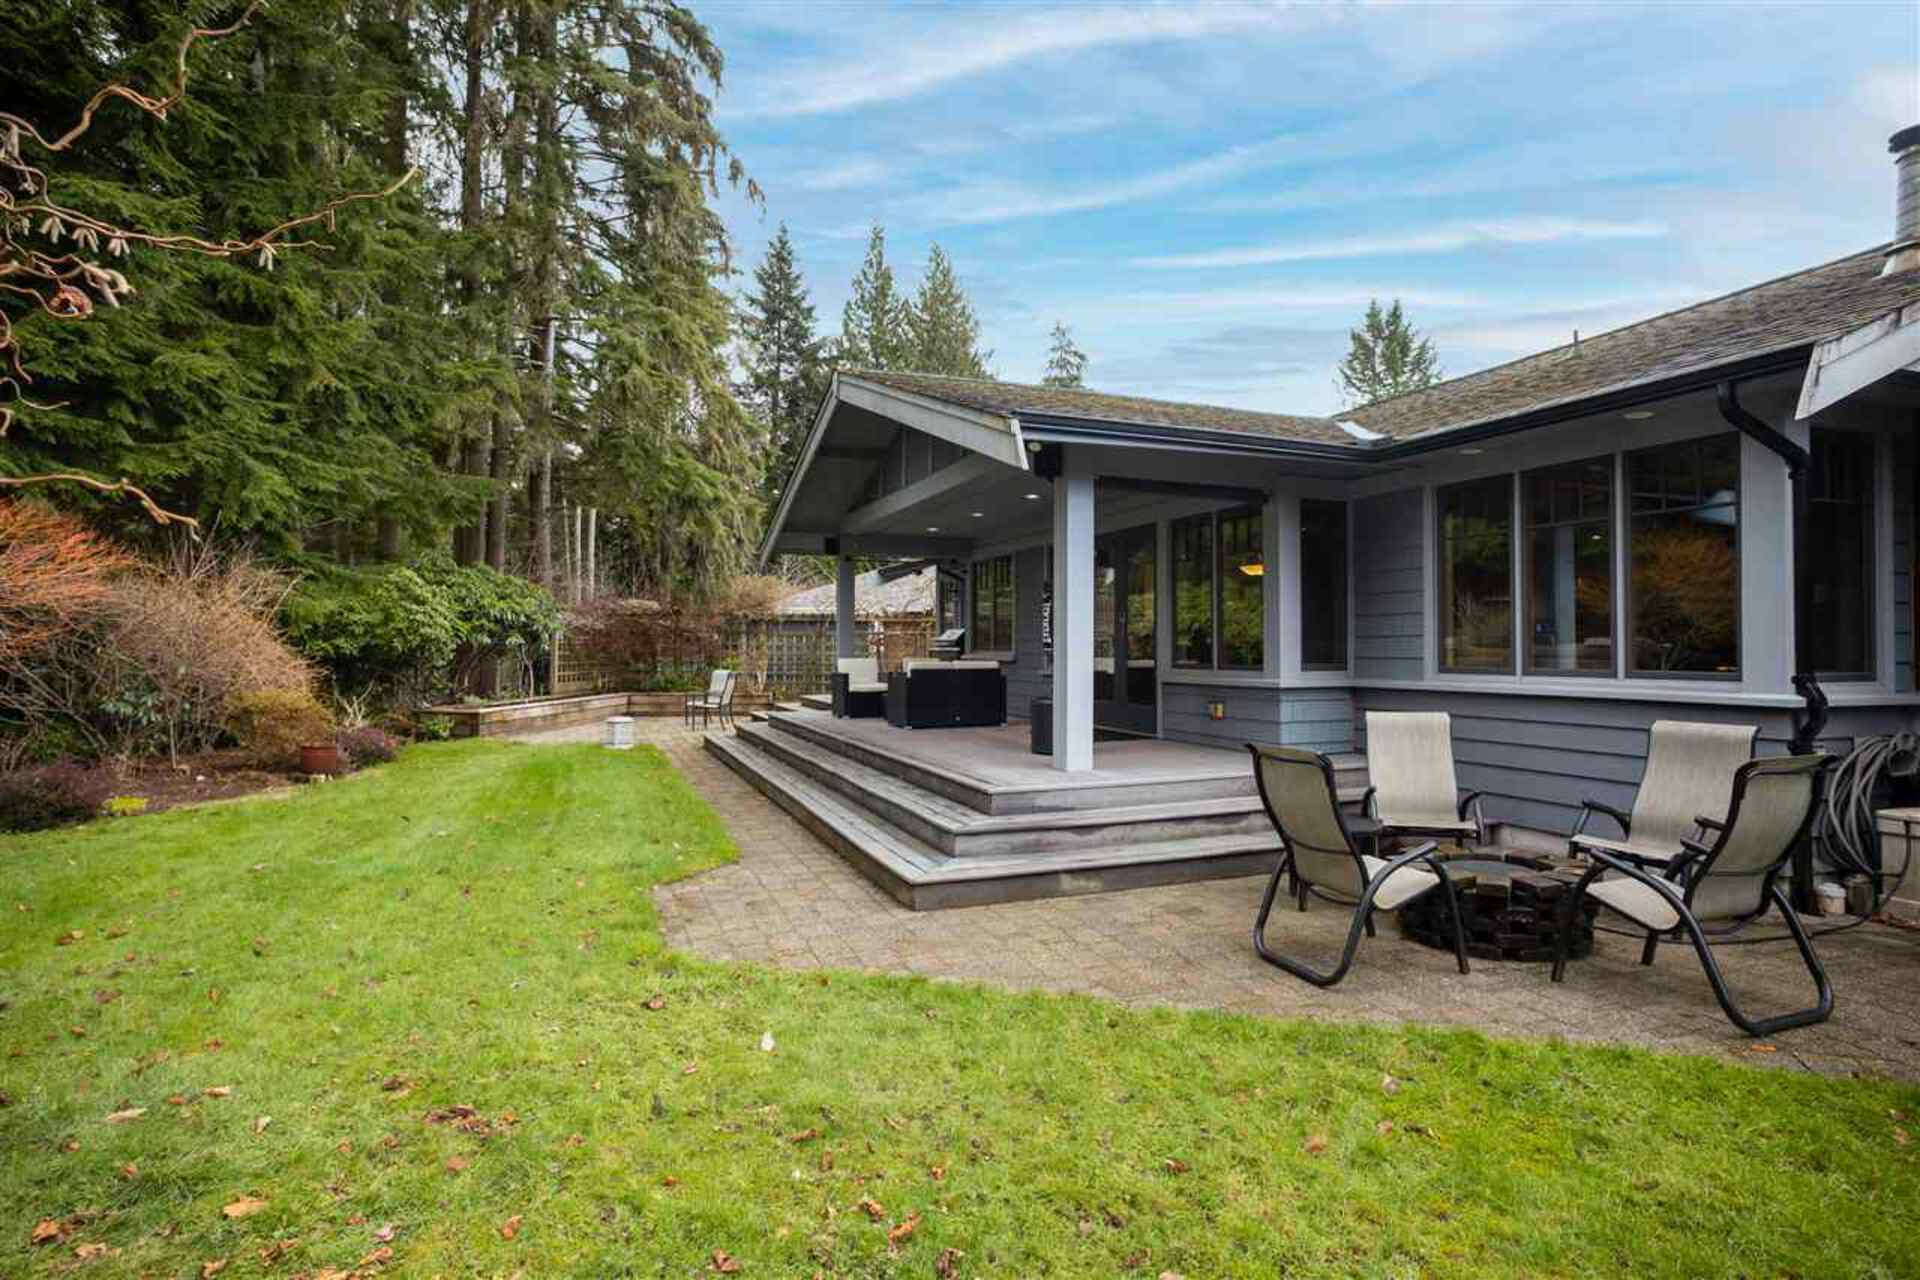 1540-e-27th-street-westlynn-north-vancouver-37 at 1540 E 27th Street, Westlynn, North Vancouver